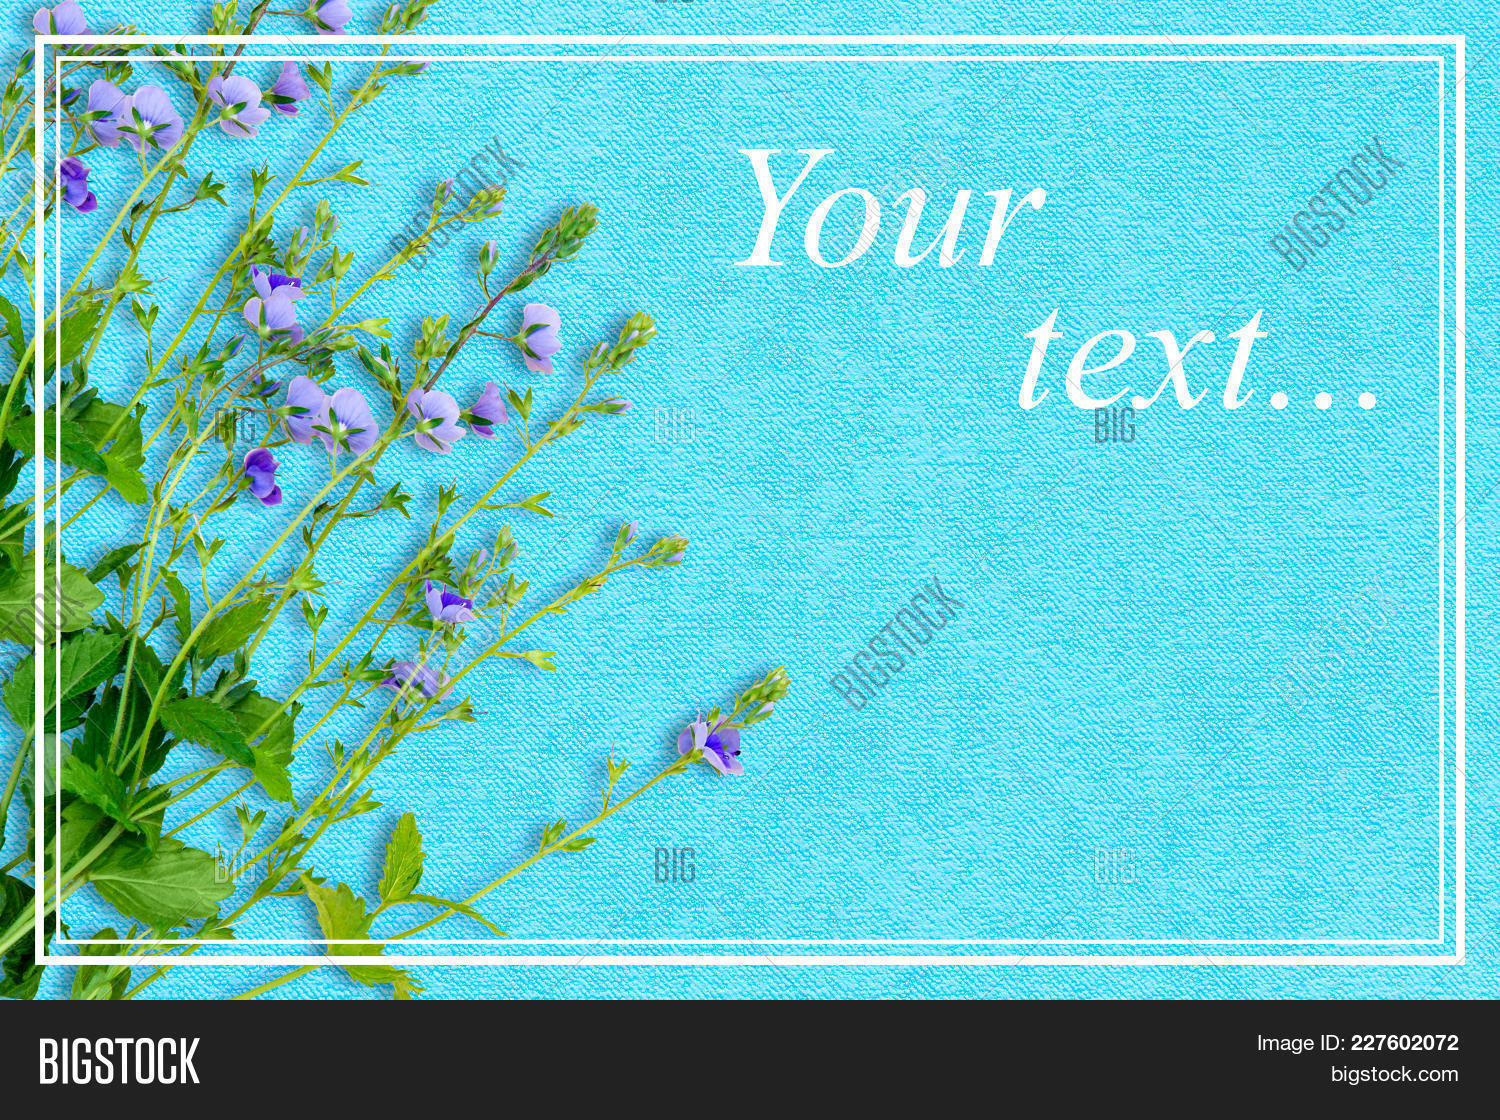 Spring background image photo free trial bigstock spring background with small purple flowers the name of the flower is veronica chamaedrys izmirmasajfo